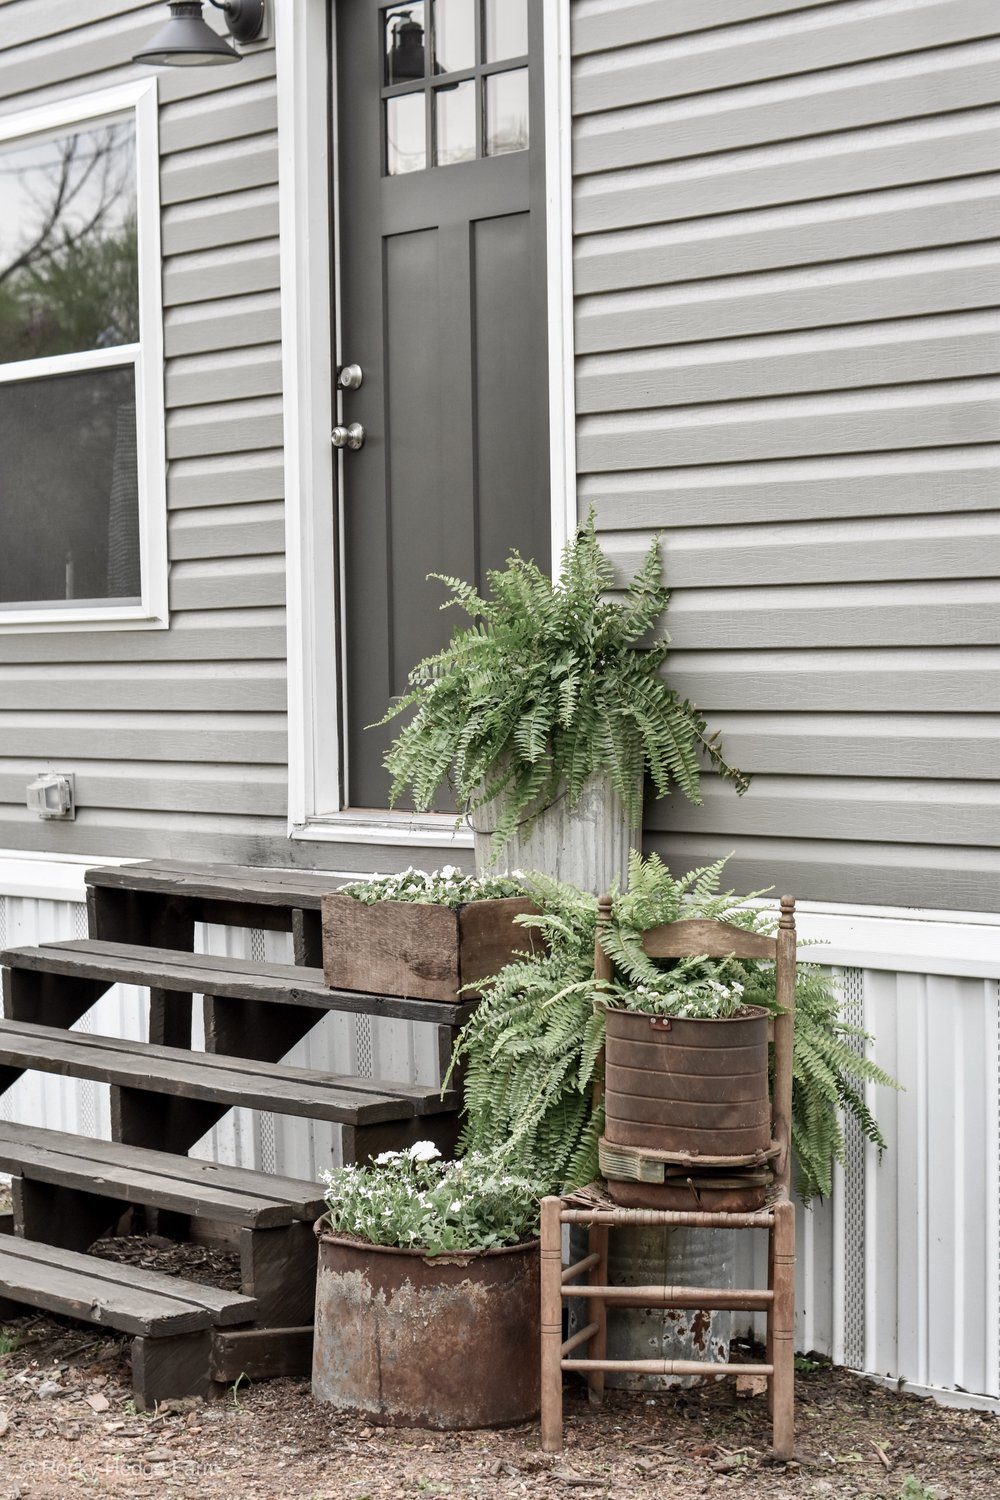 Black Front Door, White Trim, Gray Siding - Double Wide Mobile Home | Rocky Hedge Farm